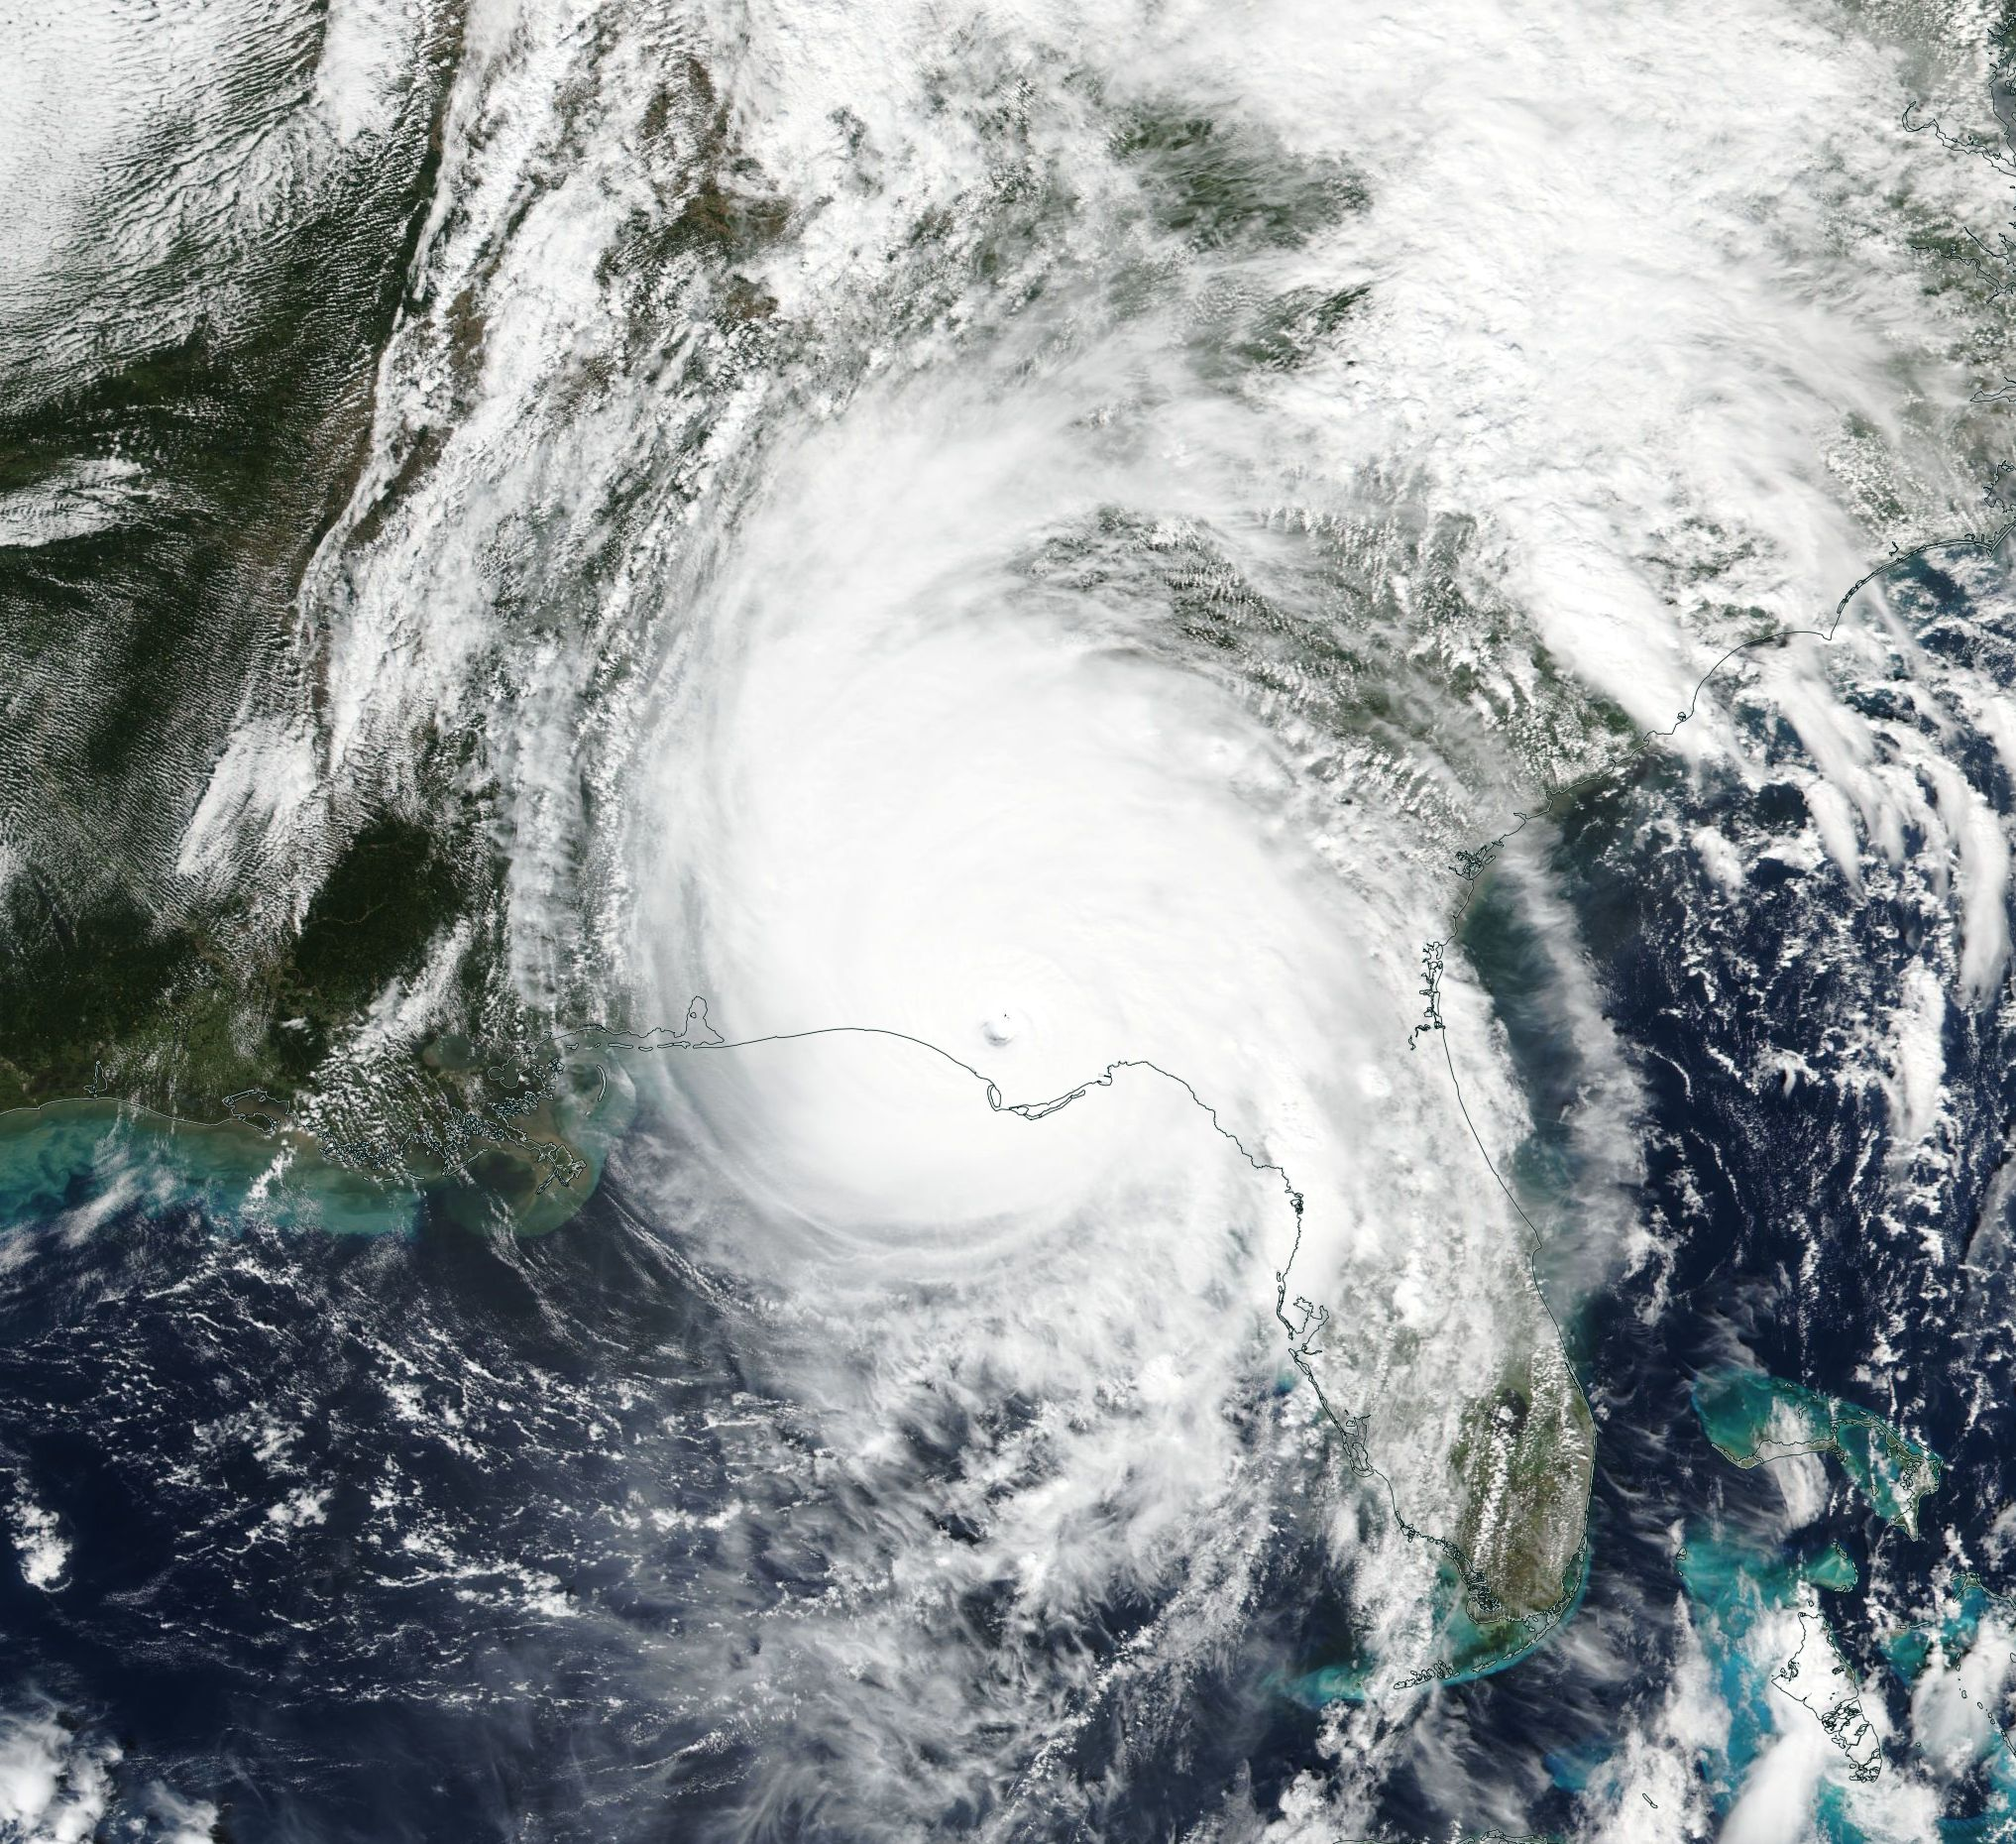 Hurricane destruction leads experts to reconsider Florida building code